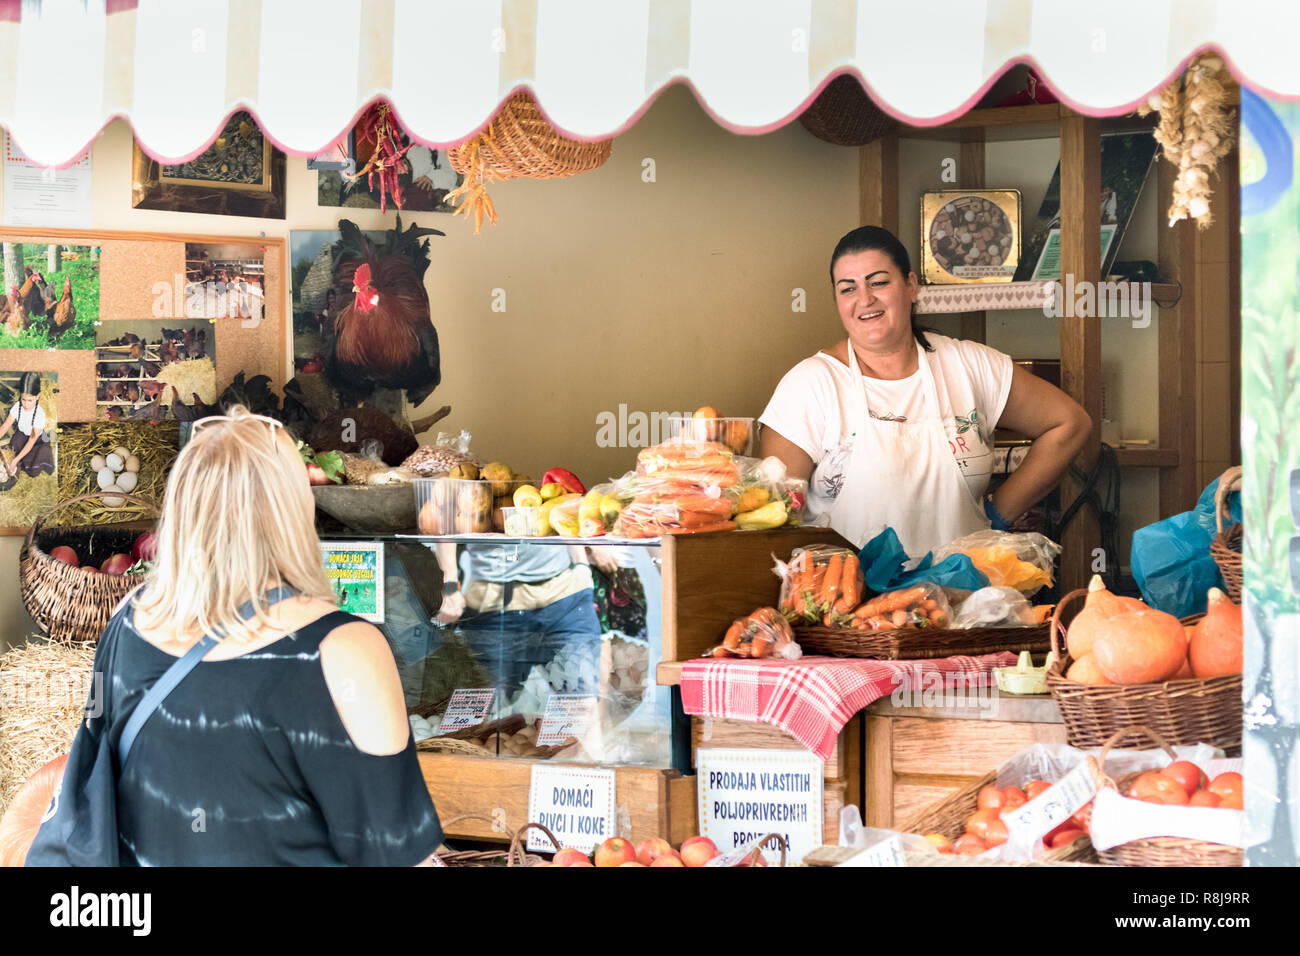 Croatia, Split - September 22th, 2018: A female seller speaking with happiness with a customer at her grocery store in a public market in Split, Croat - Stock Image